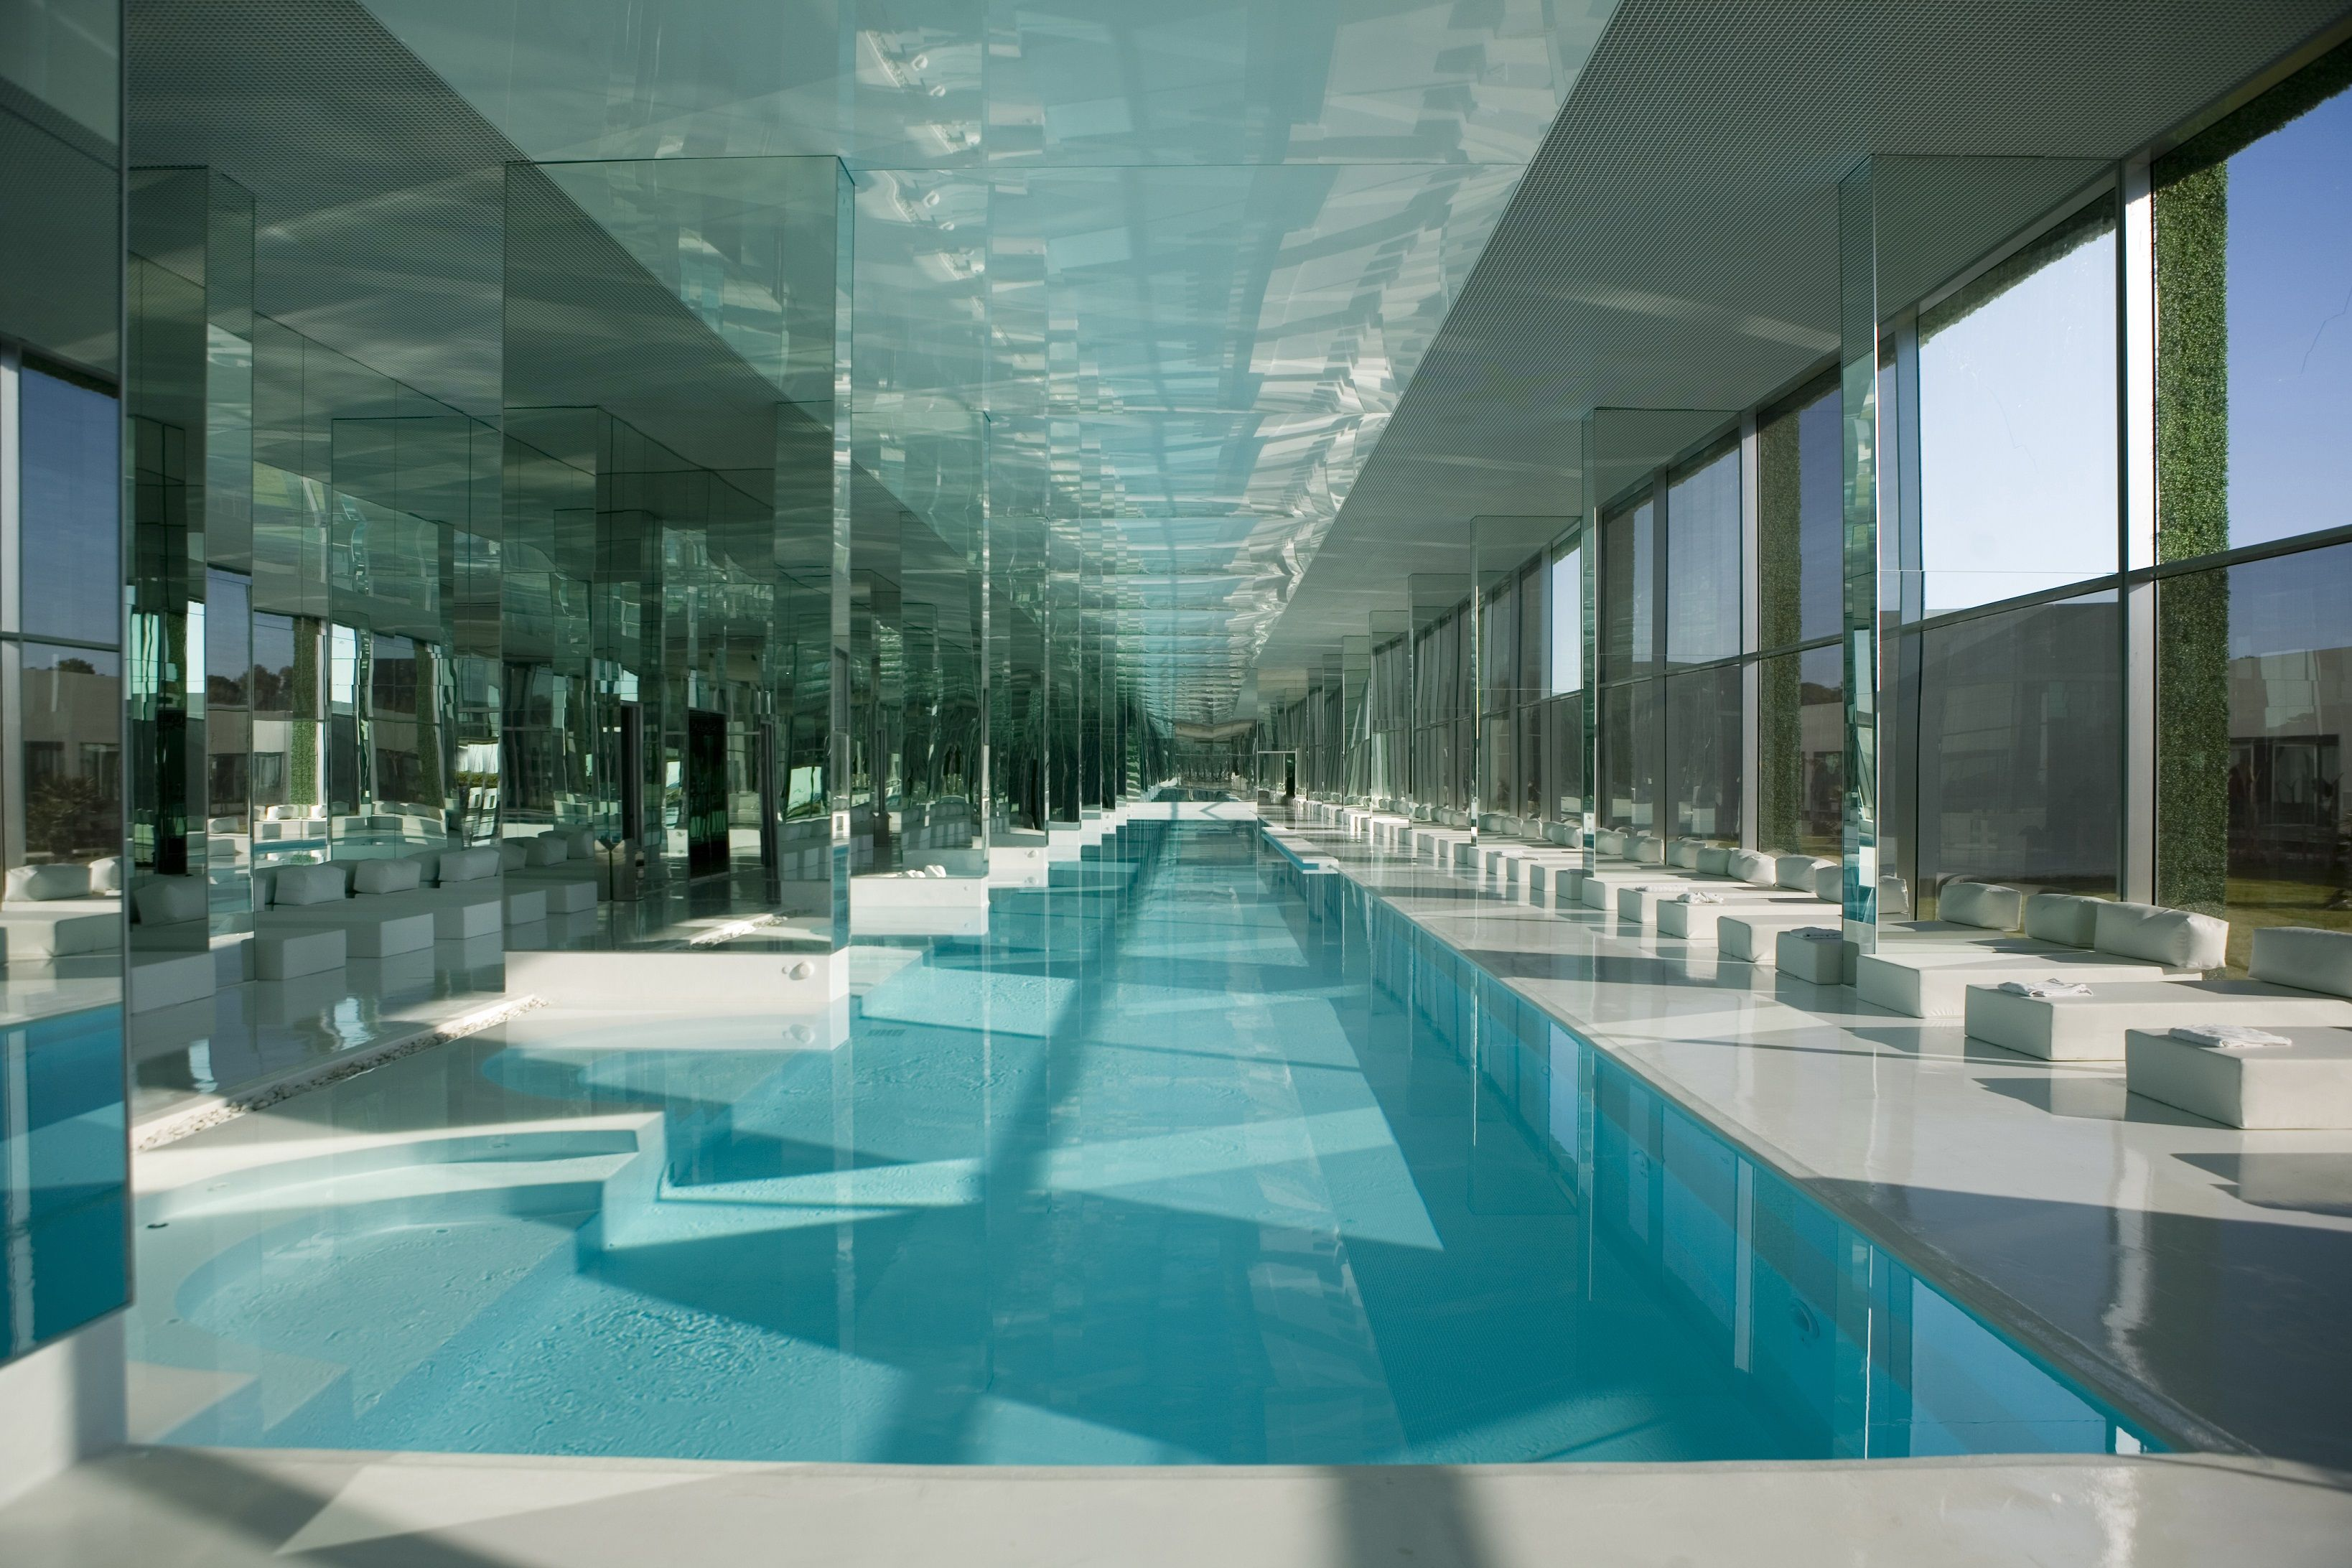 chandelier indoor swimming pool - Google Search | 泳池 | Pinterest ...